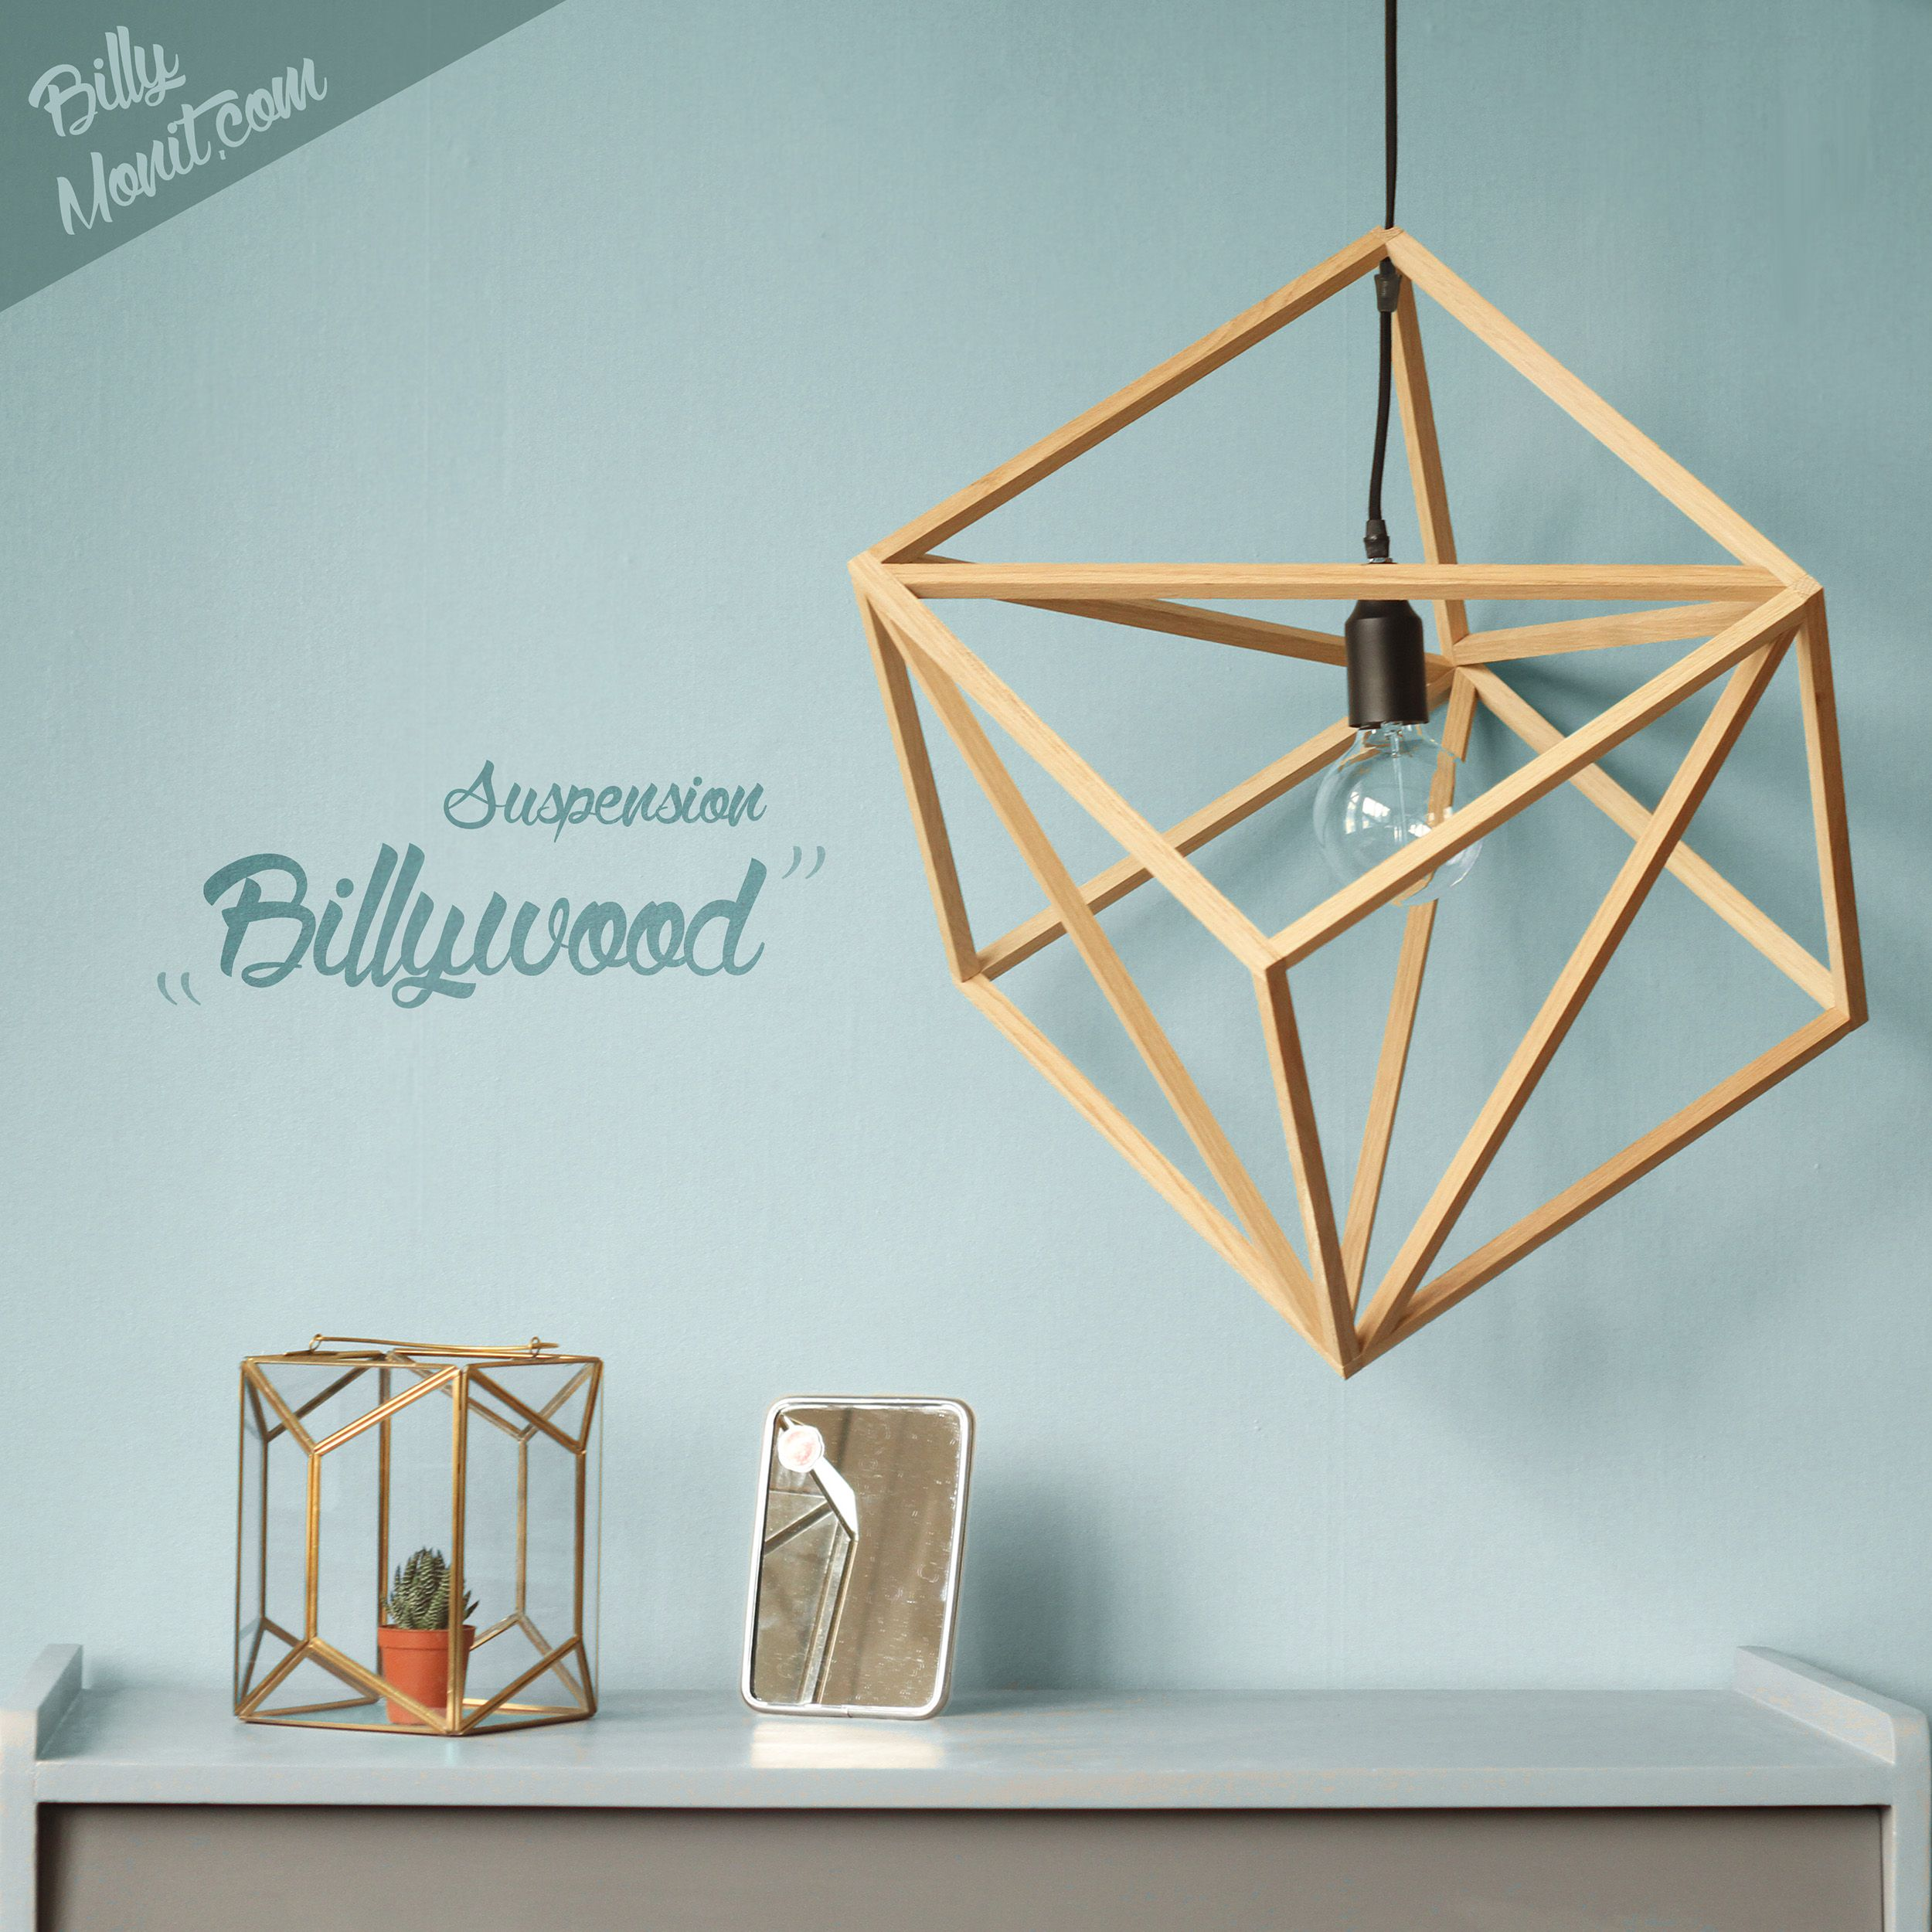 Suspension BillyWood Décoration Intérieure